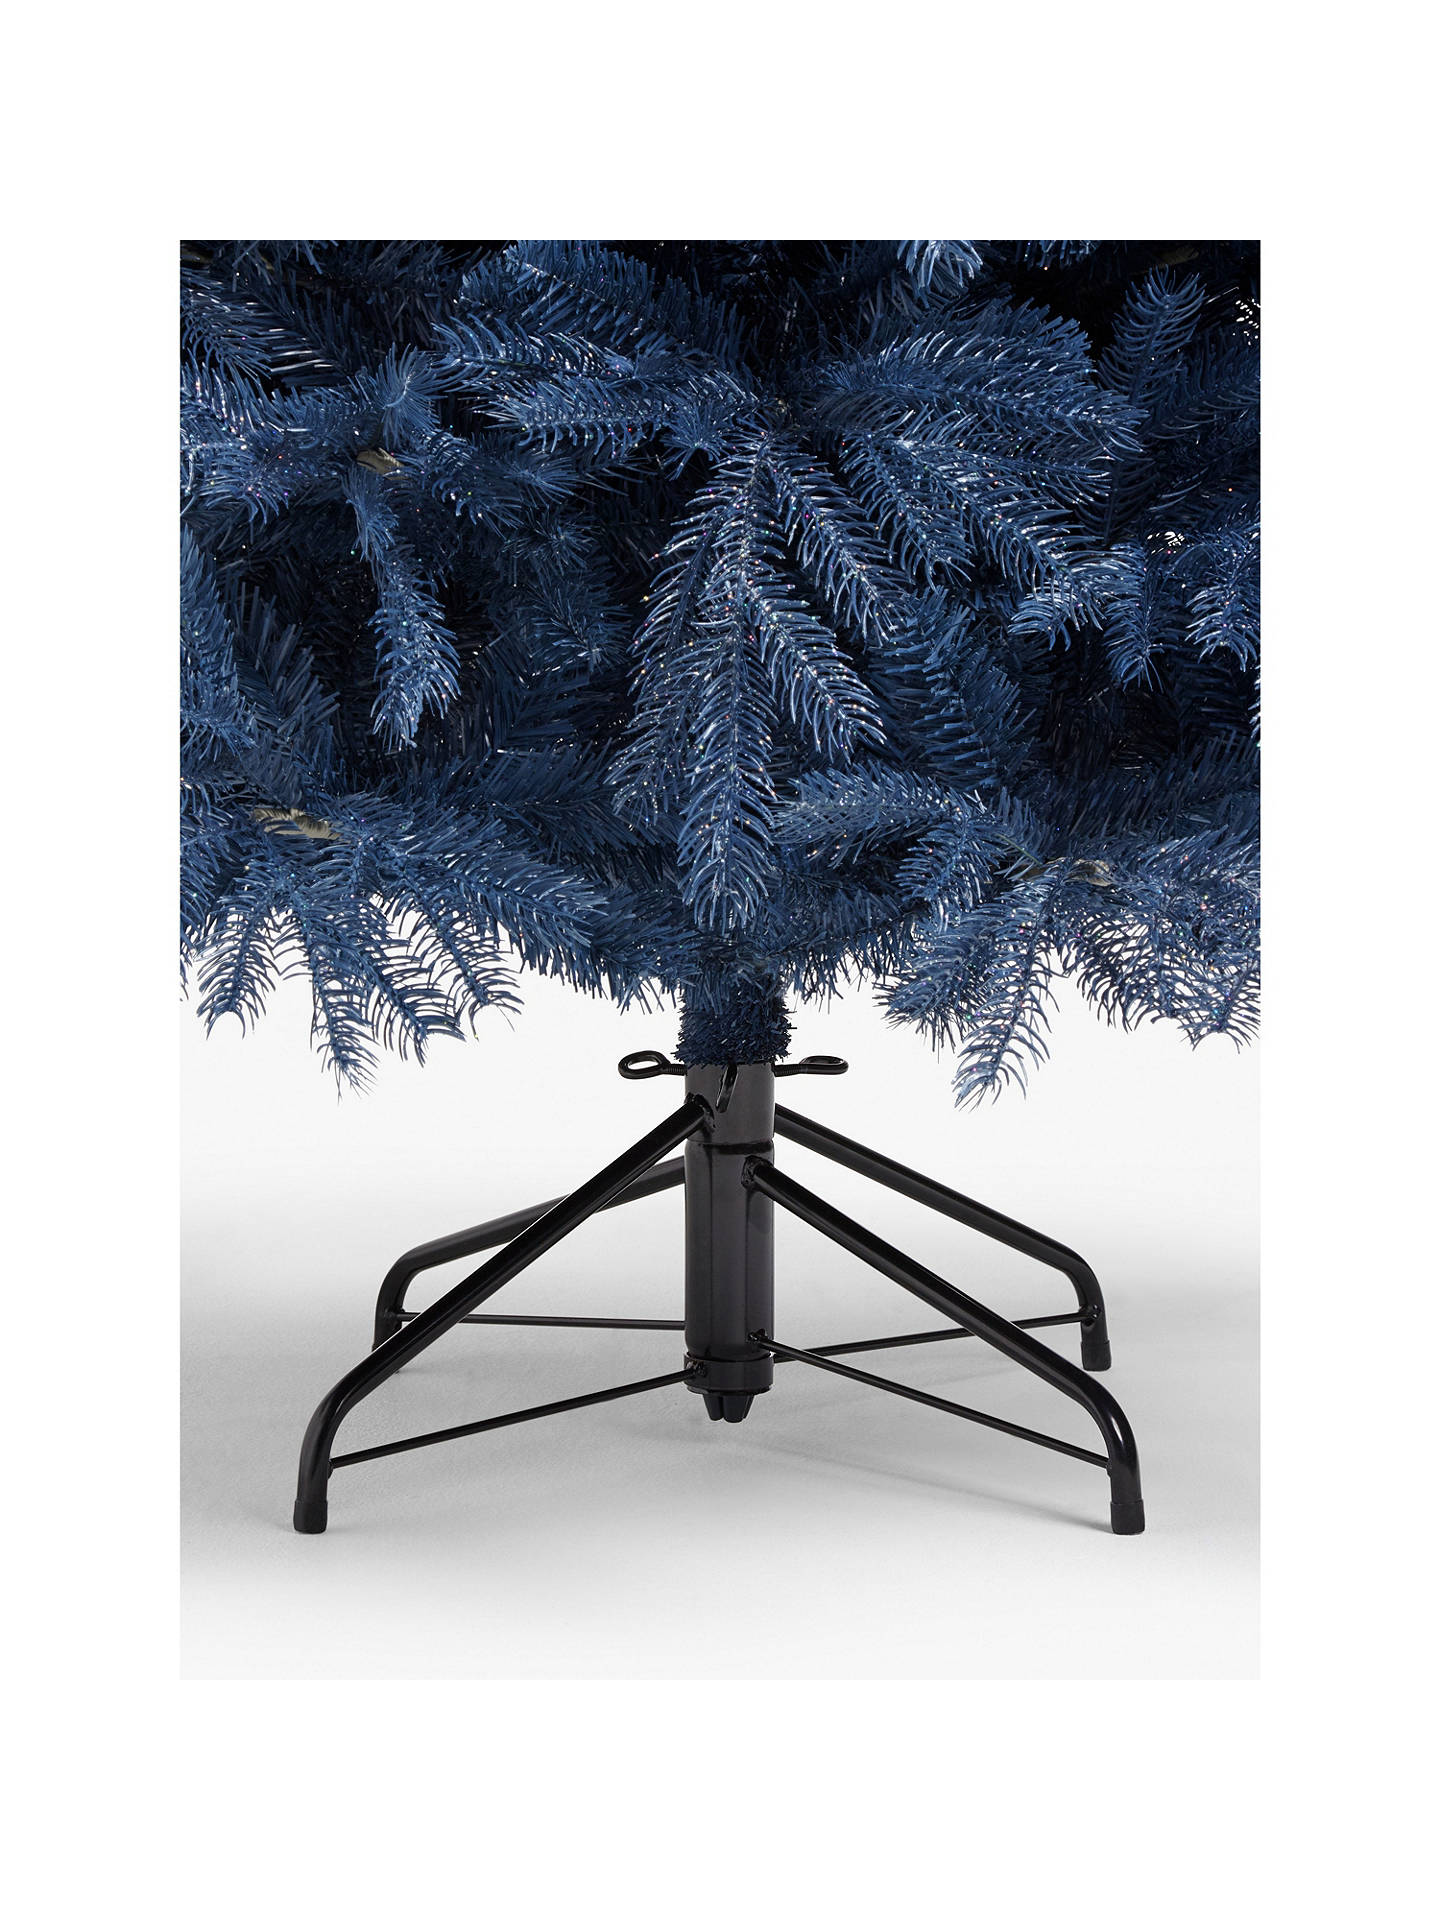 Buy John Lewis & Partners Isla Diamond Smoke Fir Unlit Christmas Tree, 7ft Online at johnlewis.com